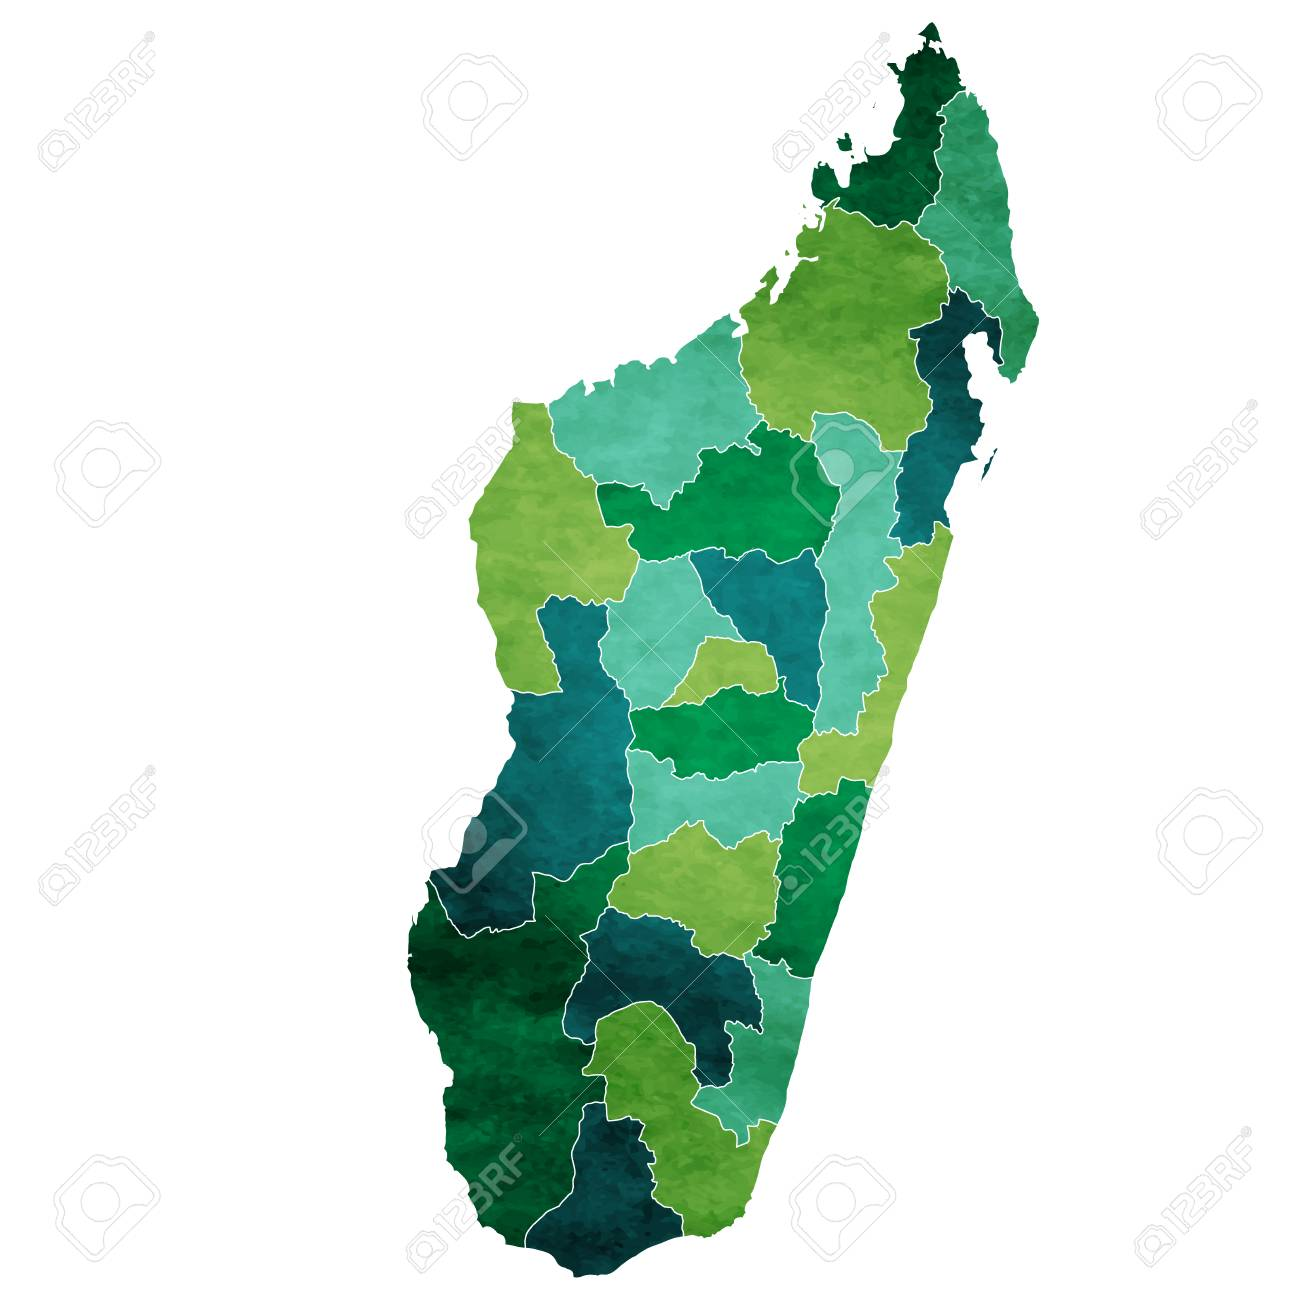 Madagascar World map country icon